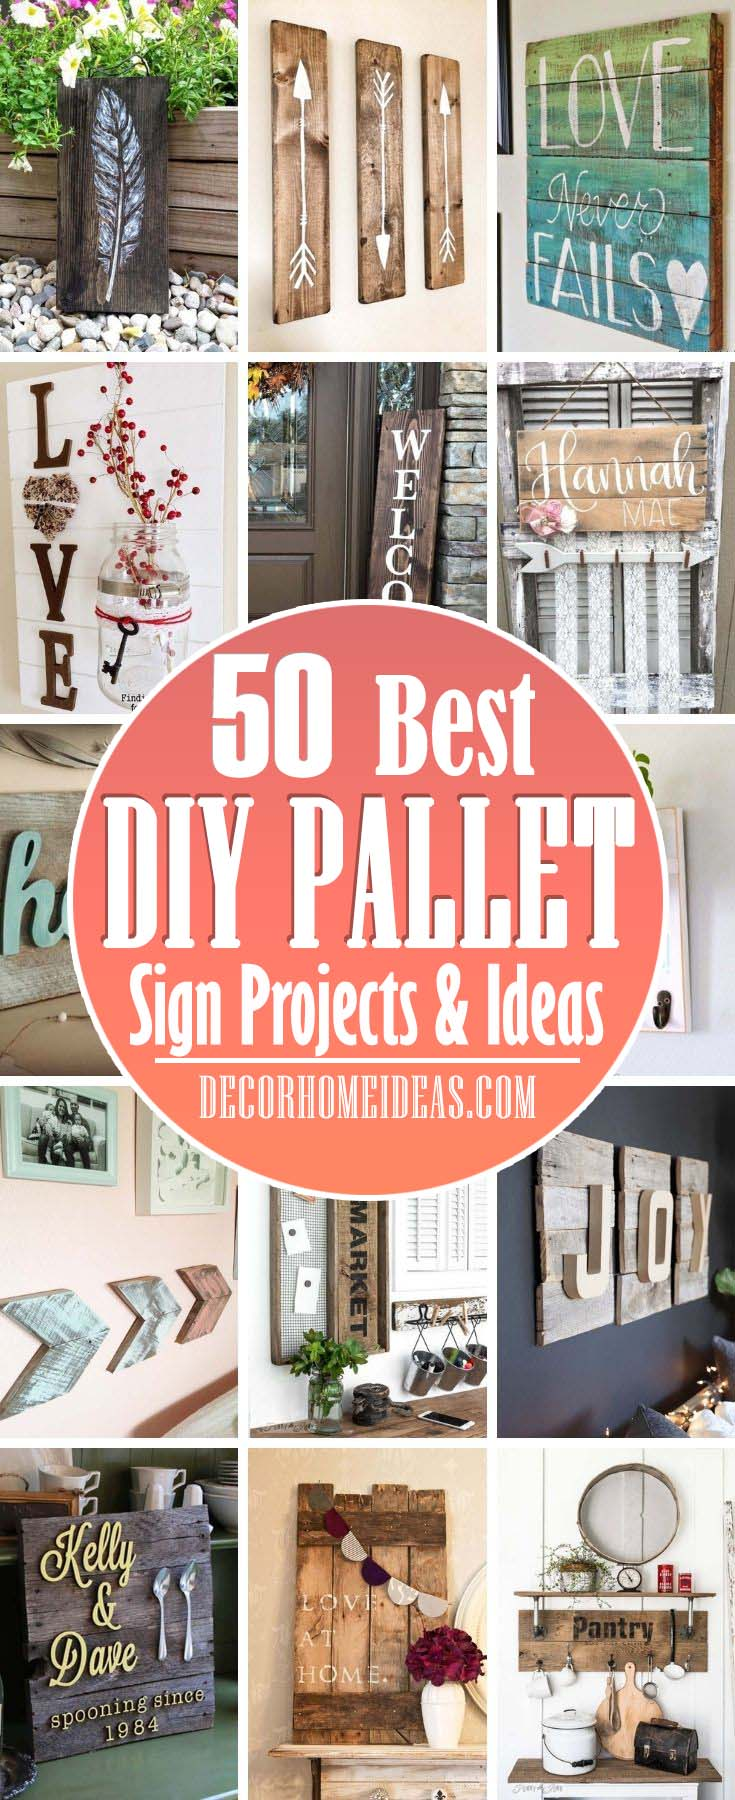 Best Pallet Sign Ideas. DIY pallet sign projects are super popular among people that like to repurpose and reuse items. Here are some of the best pallet sign ideas you can do in no time. #decorhomeideas